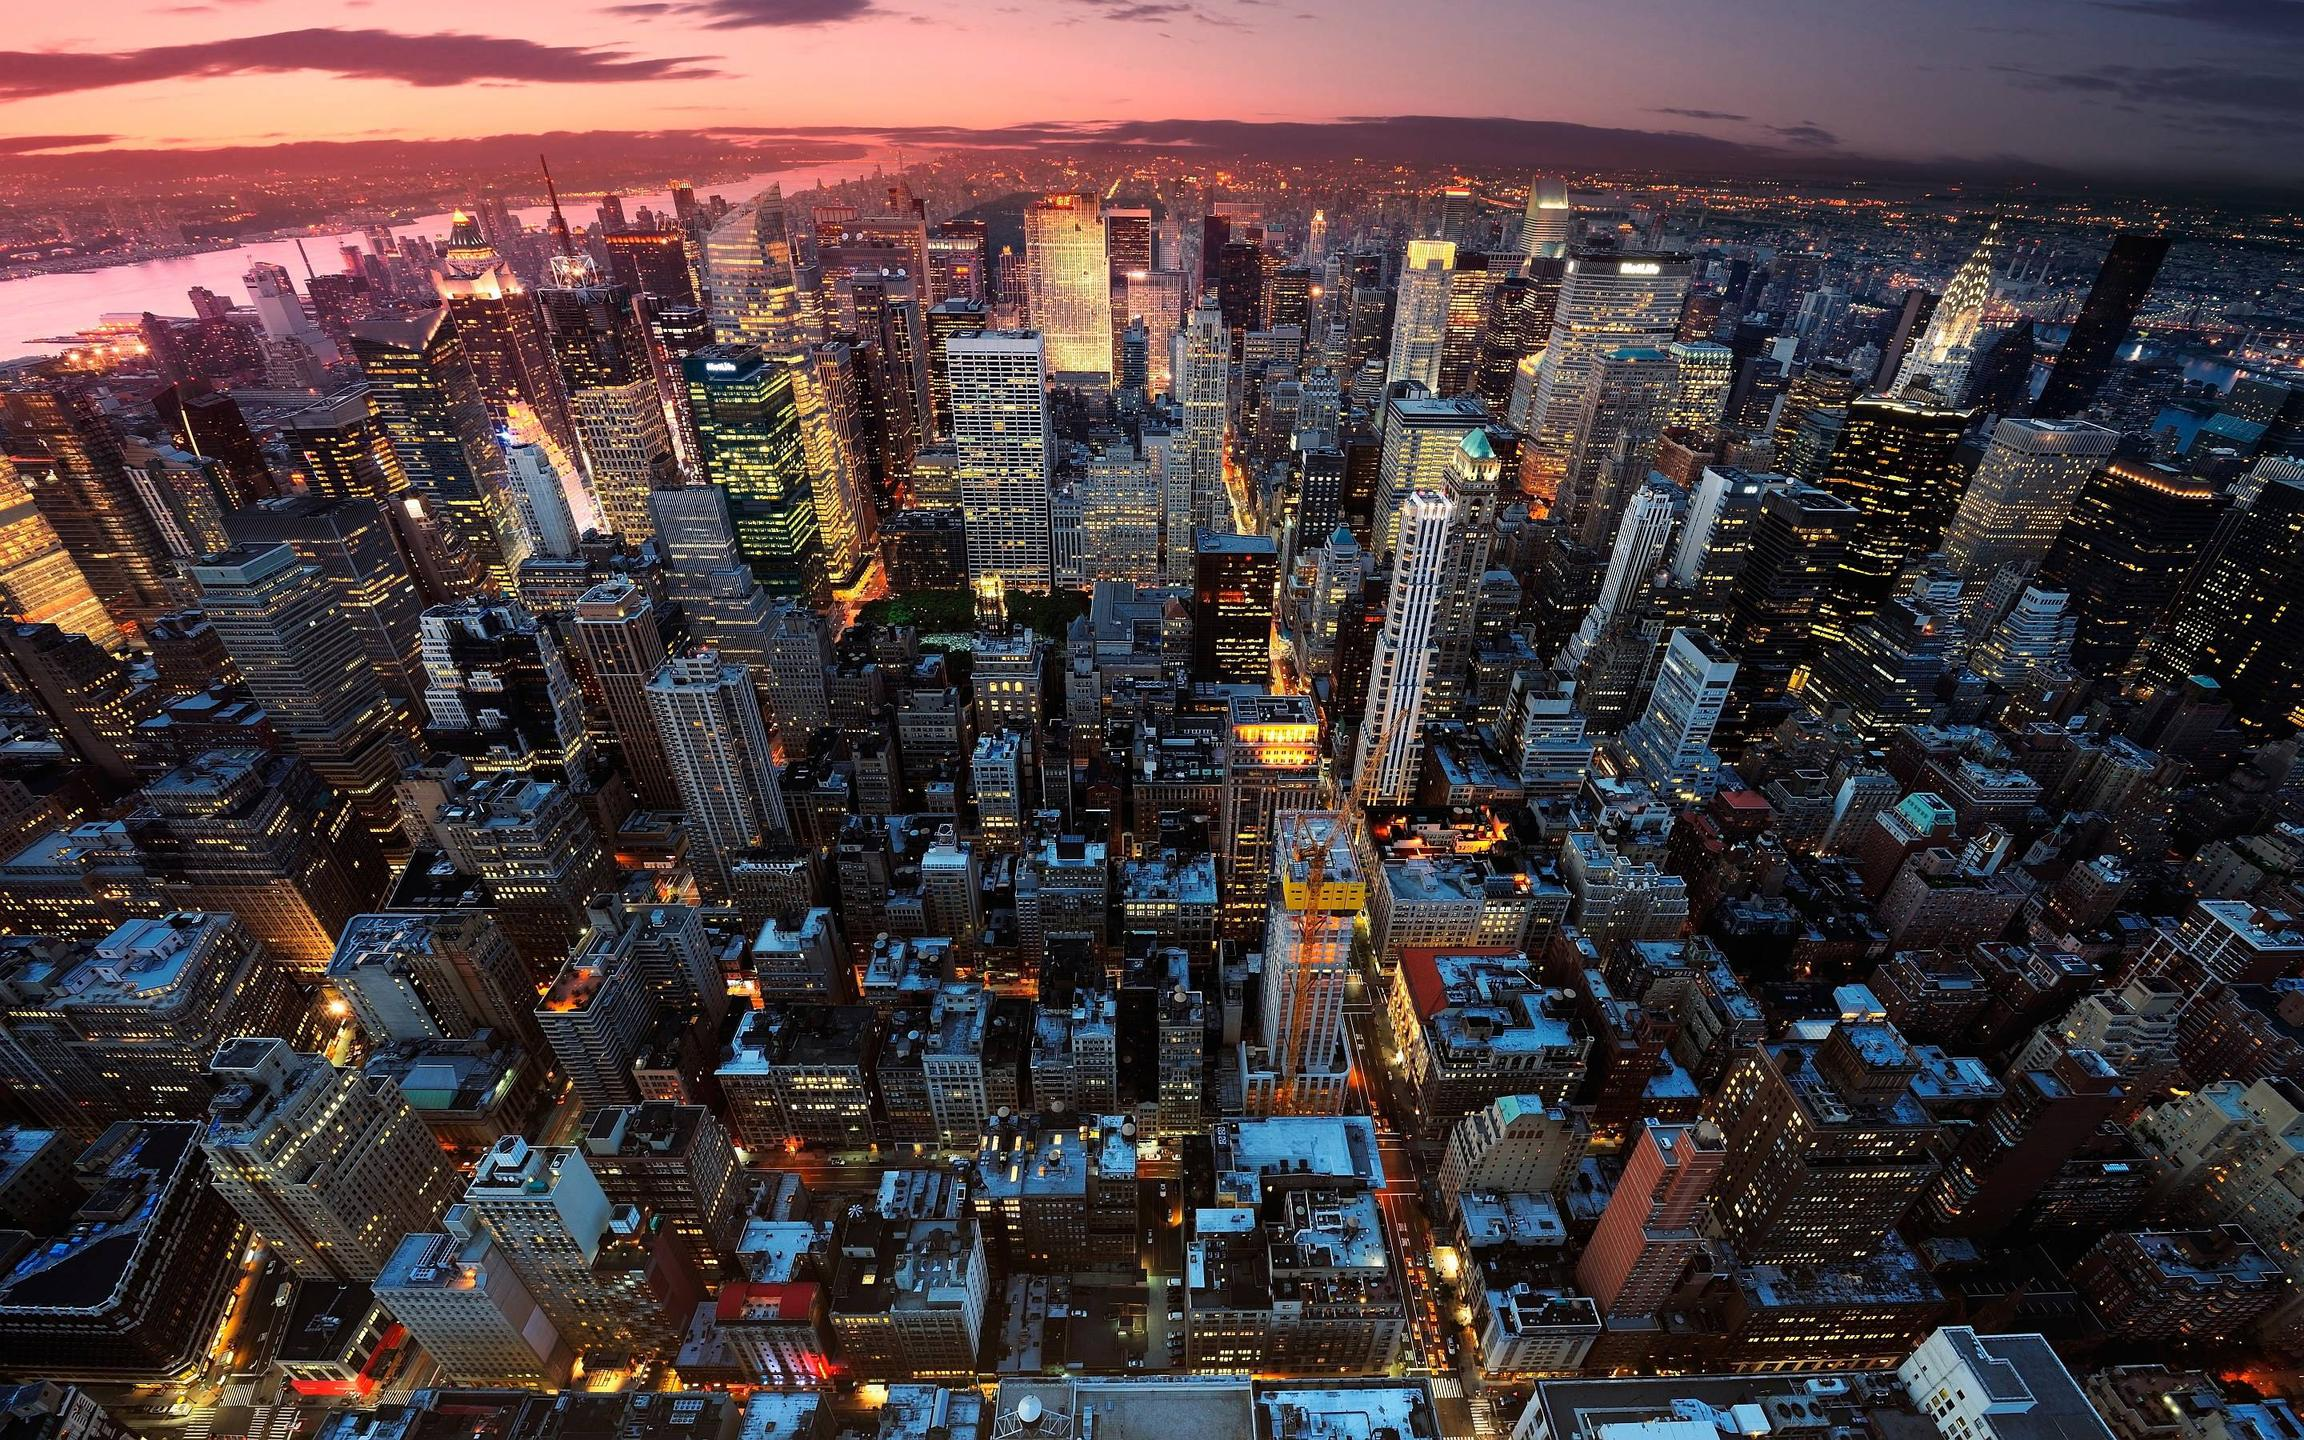 New York City Wallpaper Hd Download For Desktop And Mobile 2304x1440